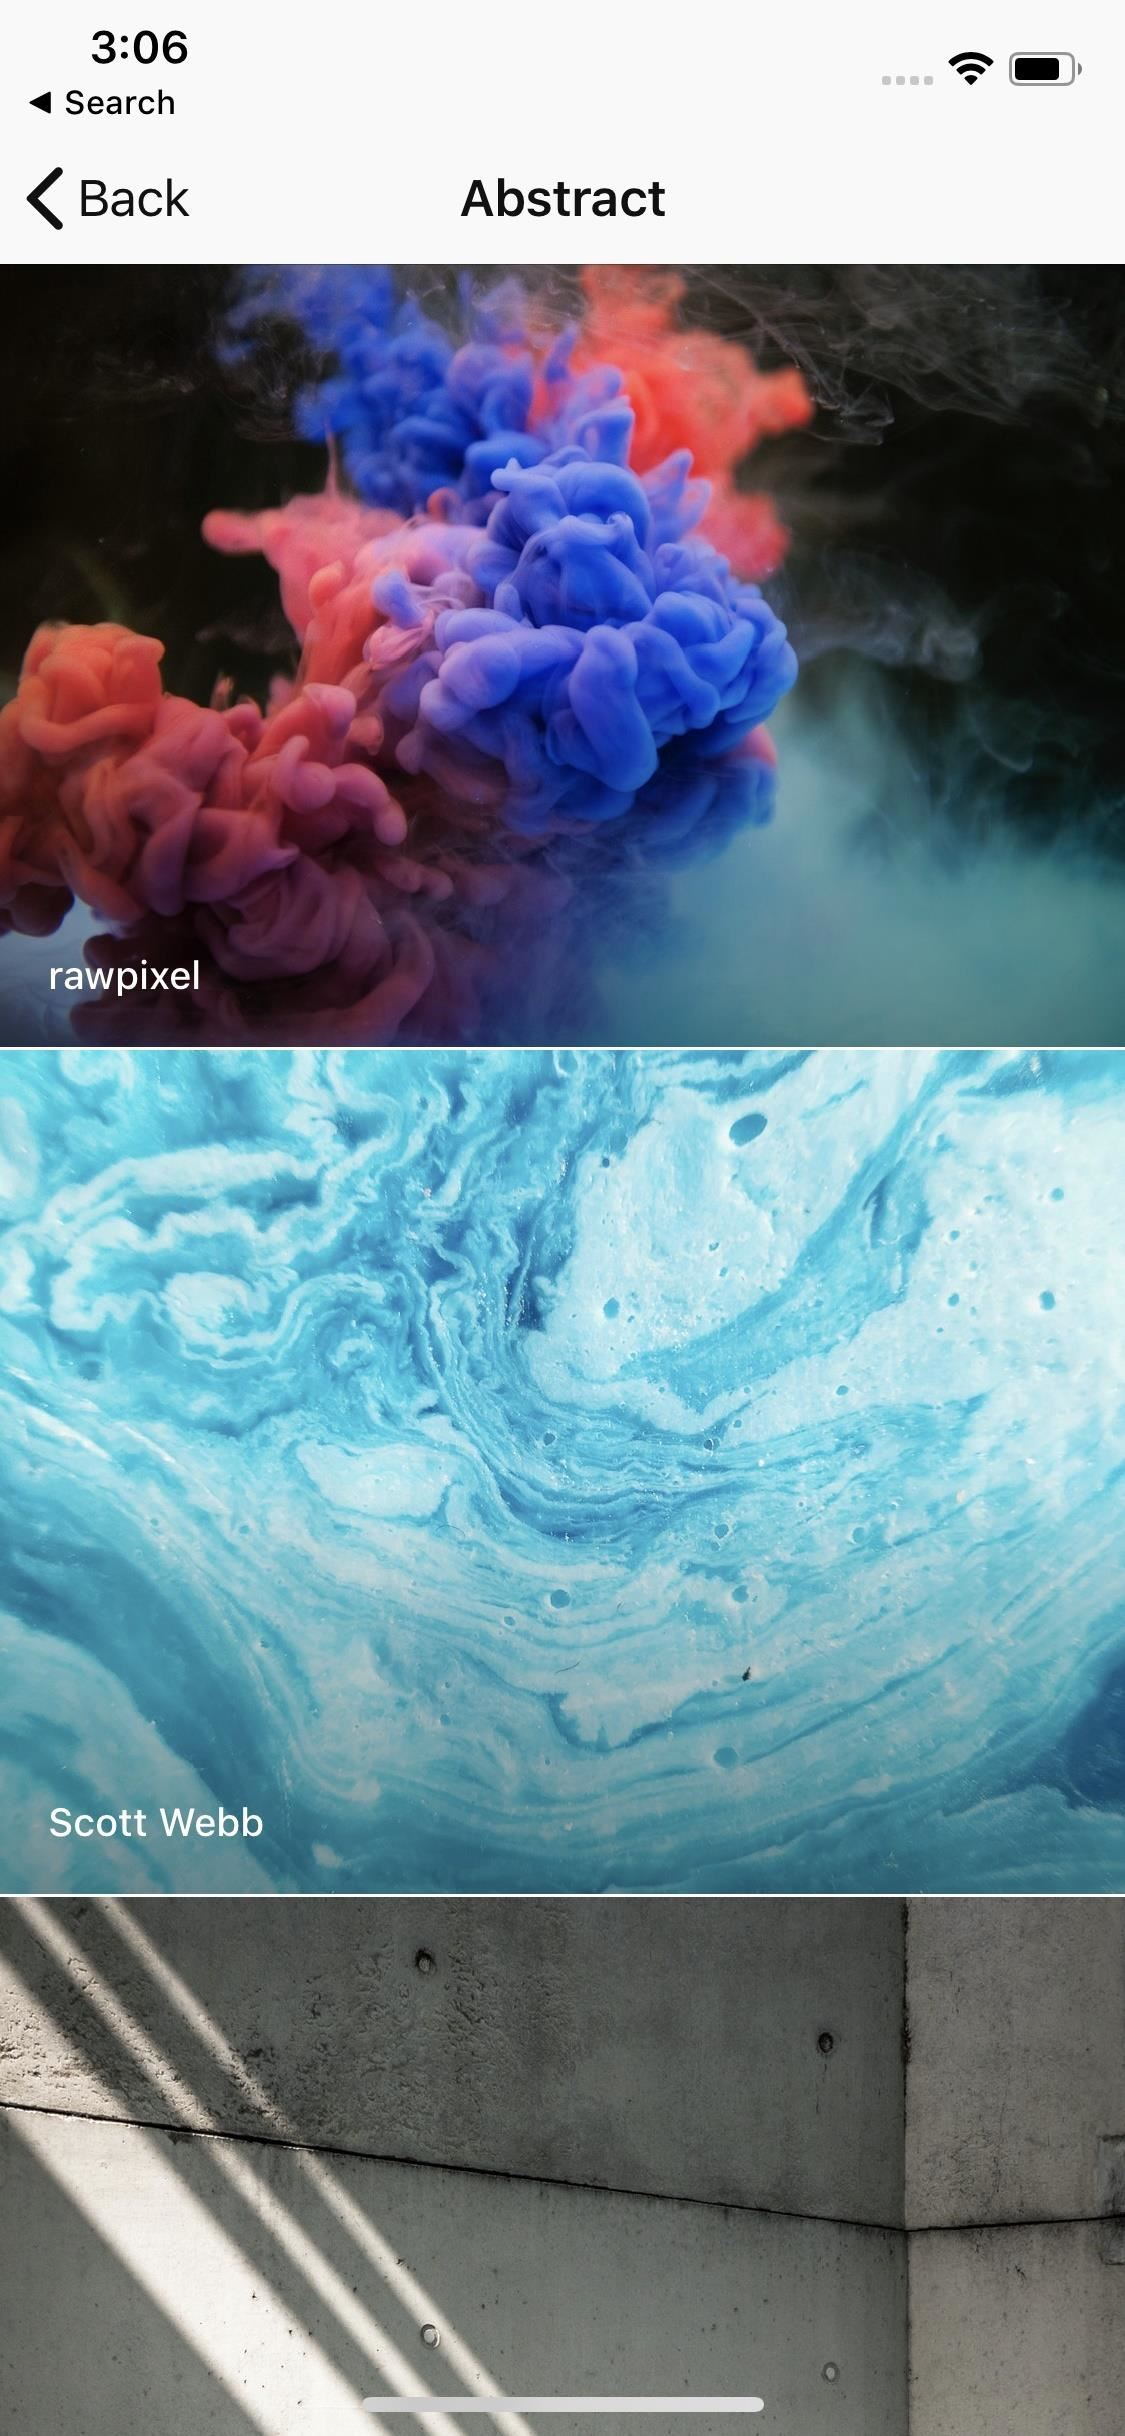 Top 5 Free Wallpaper Apps for Your iPhone